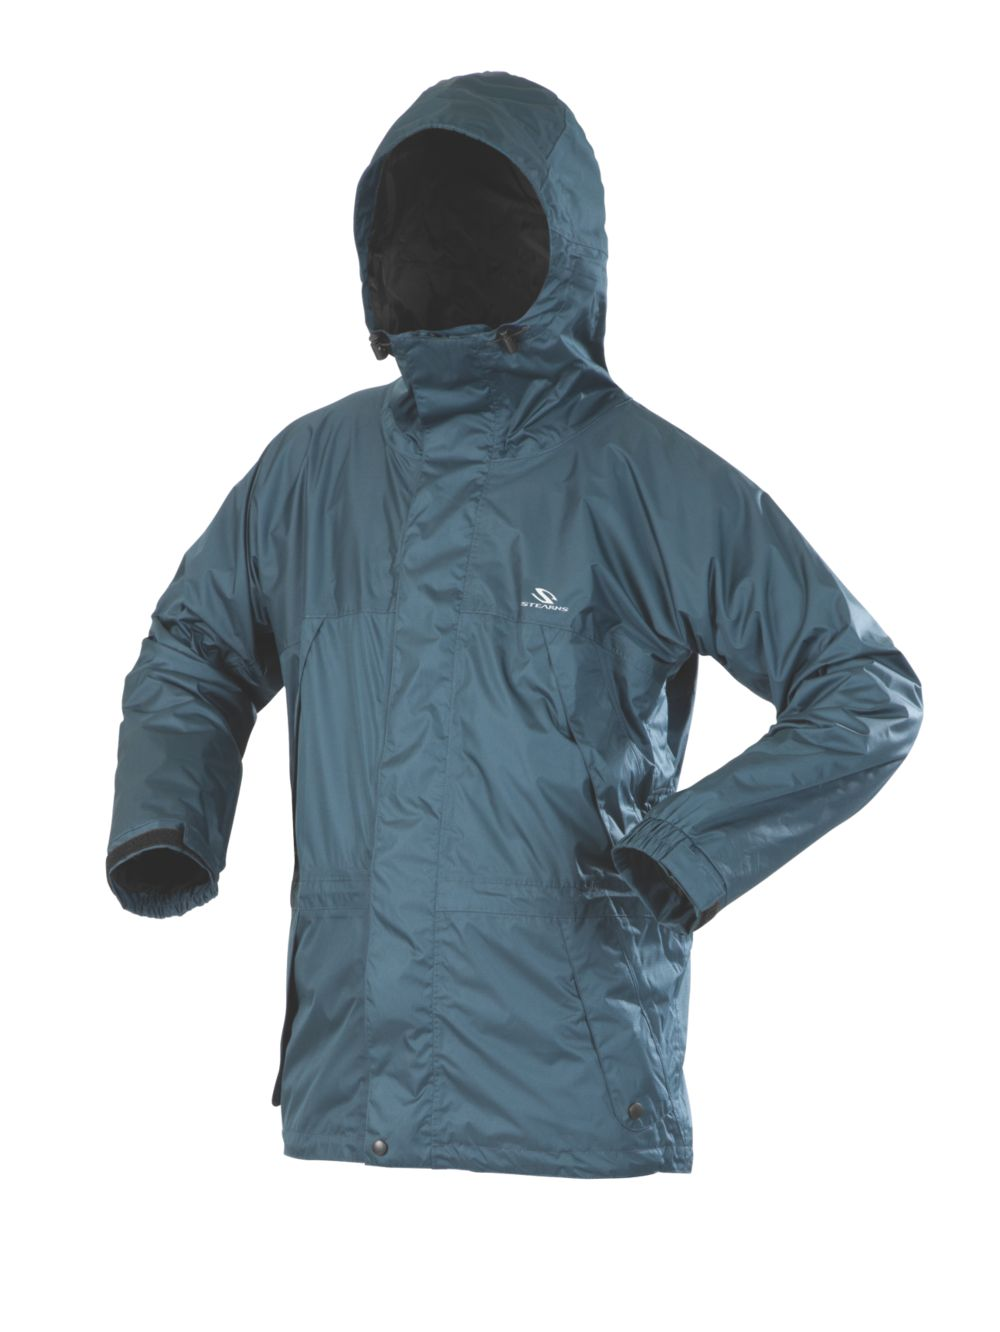 Polyester Ripstop Jacket